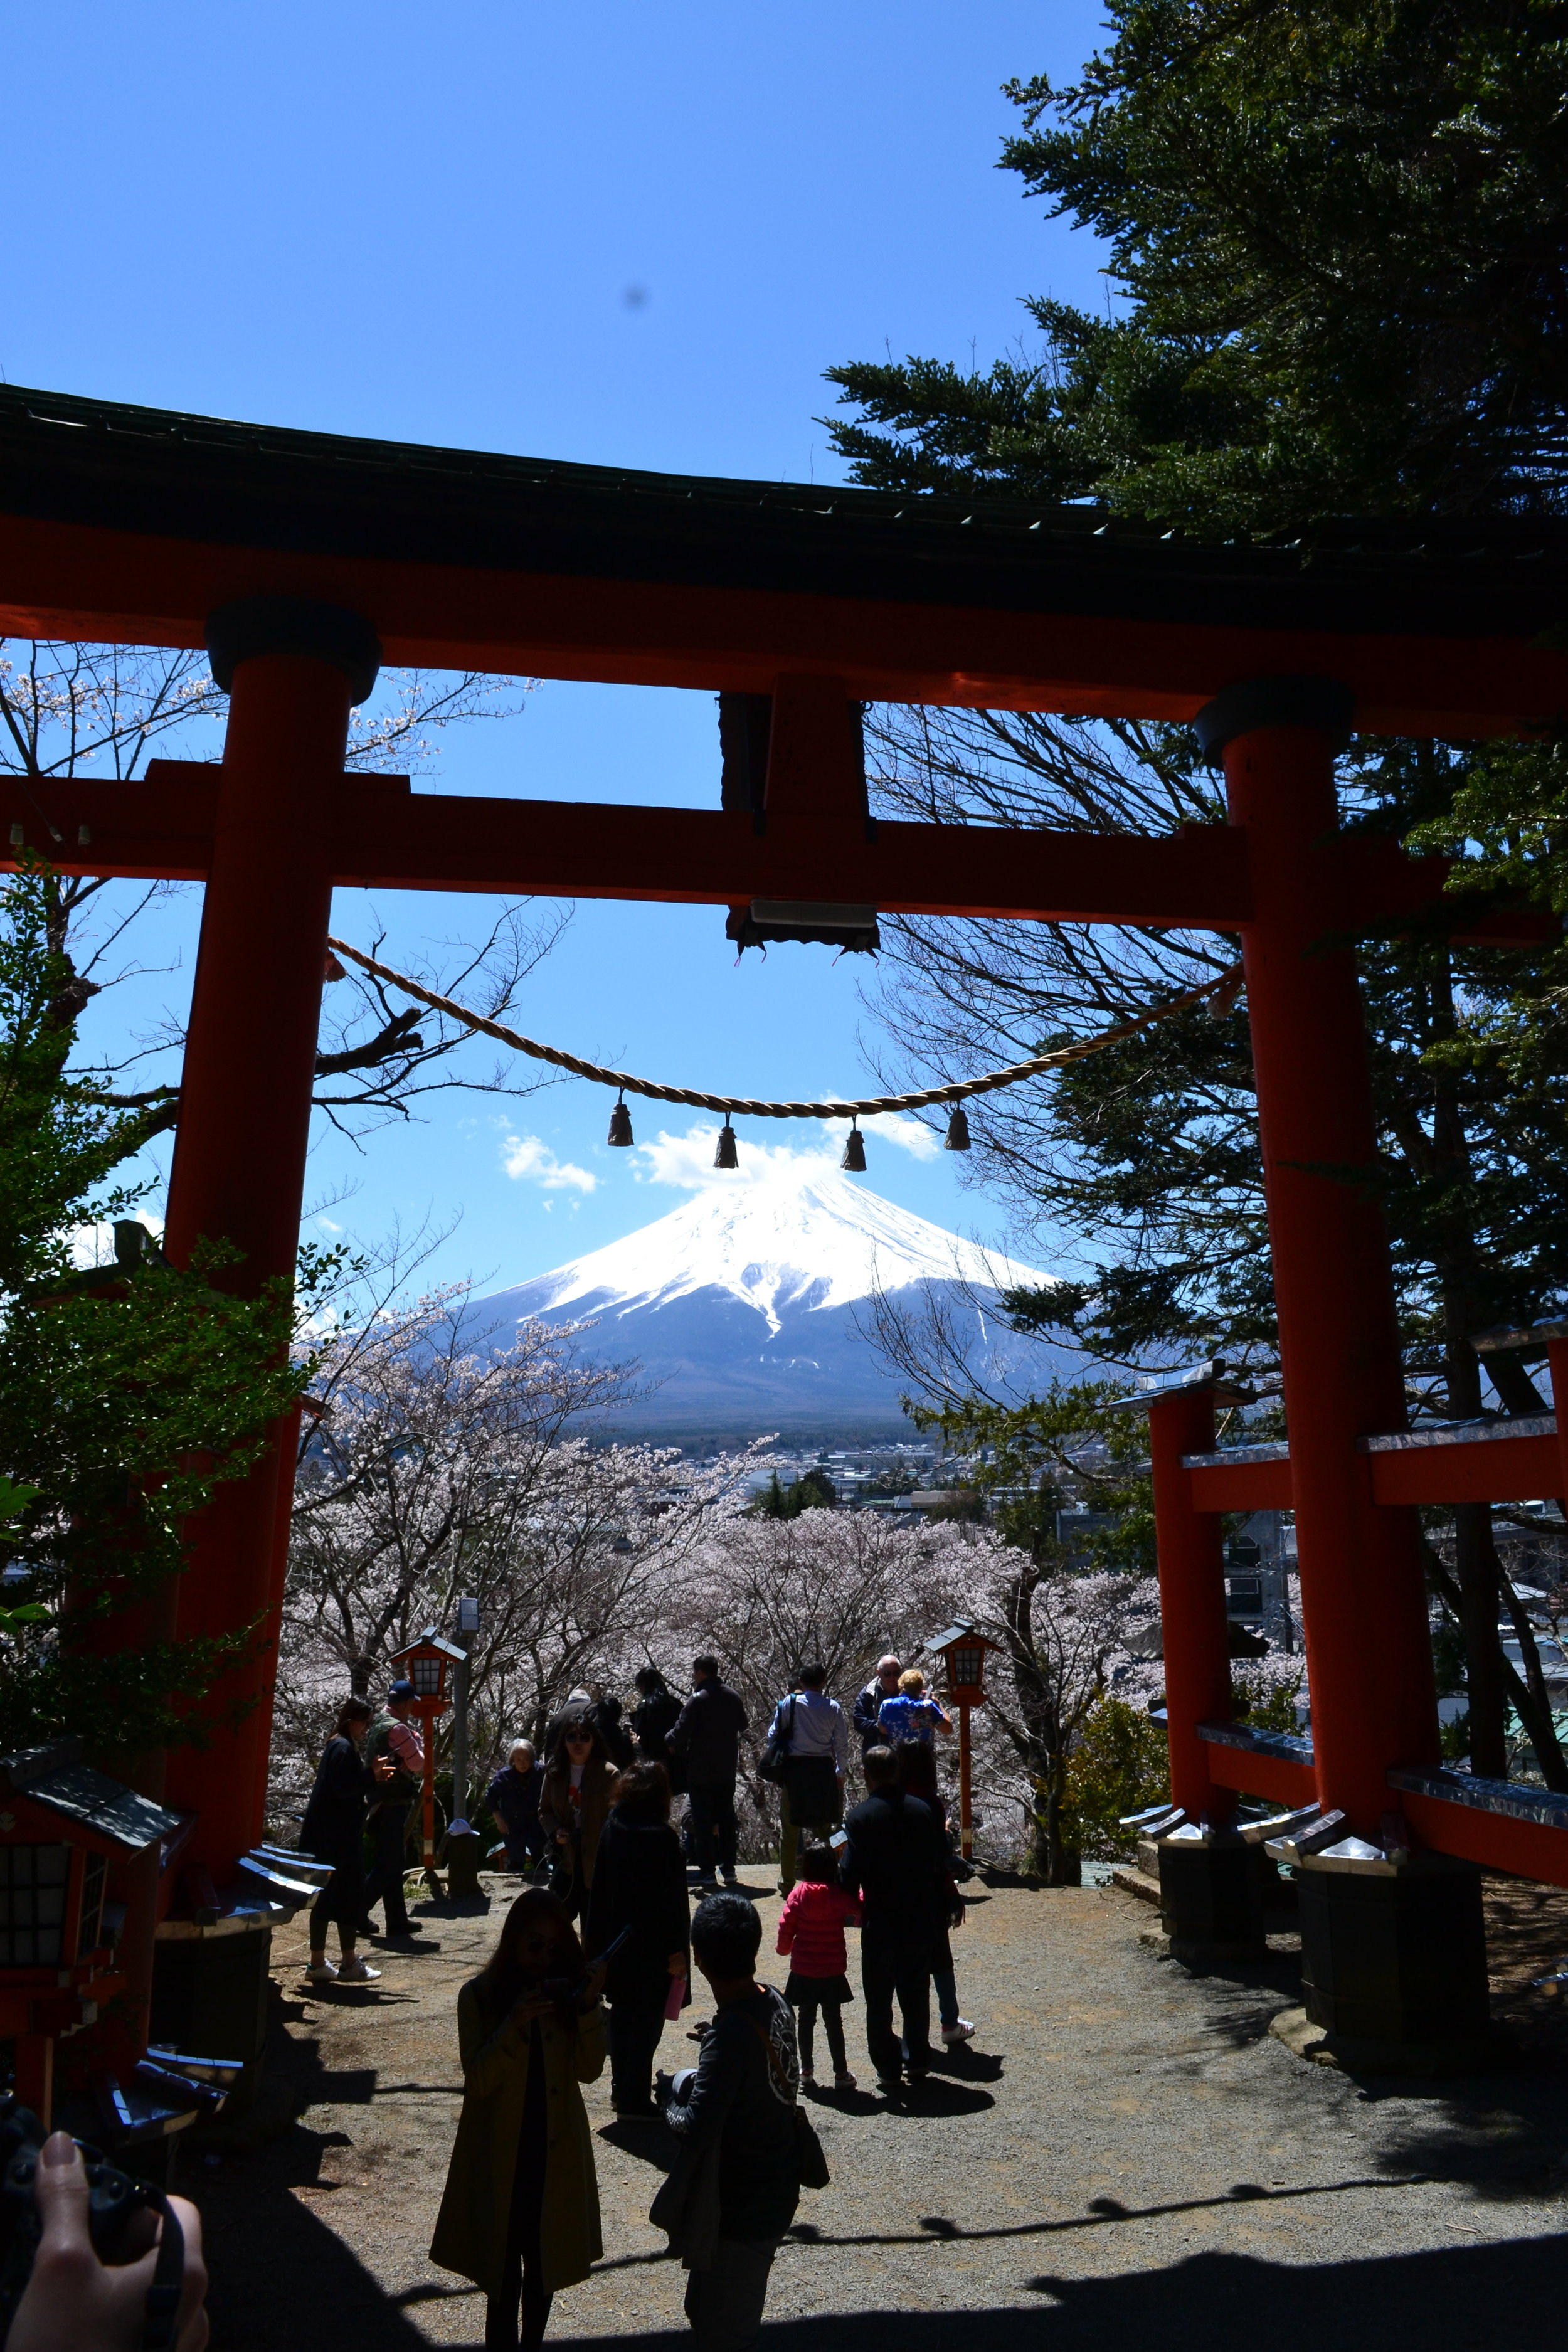 Walking up to the famous Chureito Pagoda you passed through this torii, a Shinto gate indicating the sacred land beyond it. When you turn around, not only can you see the gate but also the cherry blossoms leading up the trail AND Mount Fuji. You can see how many people stopped to snap a picture, like myself.